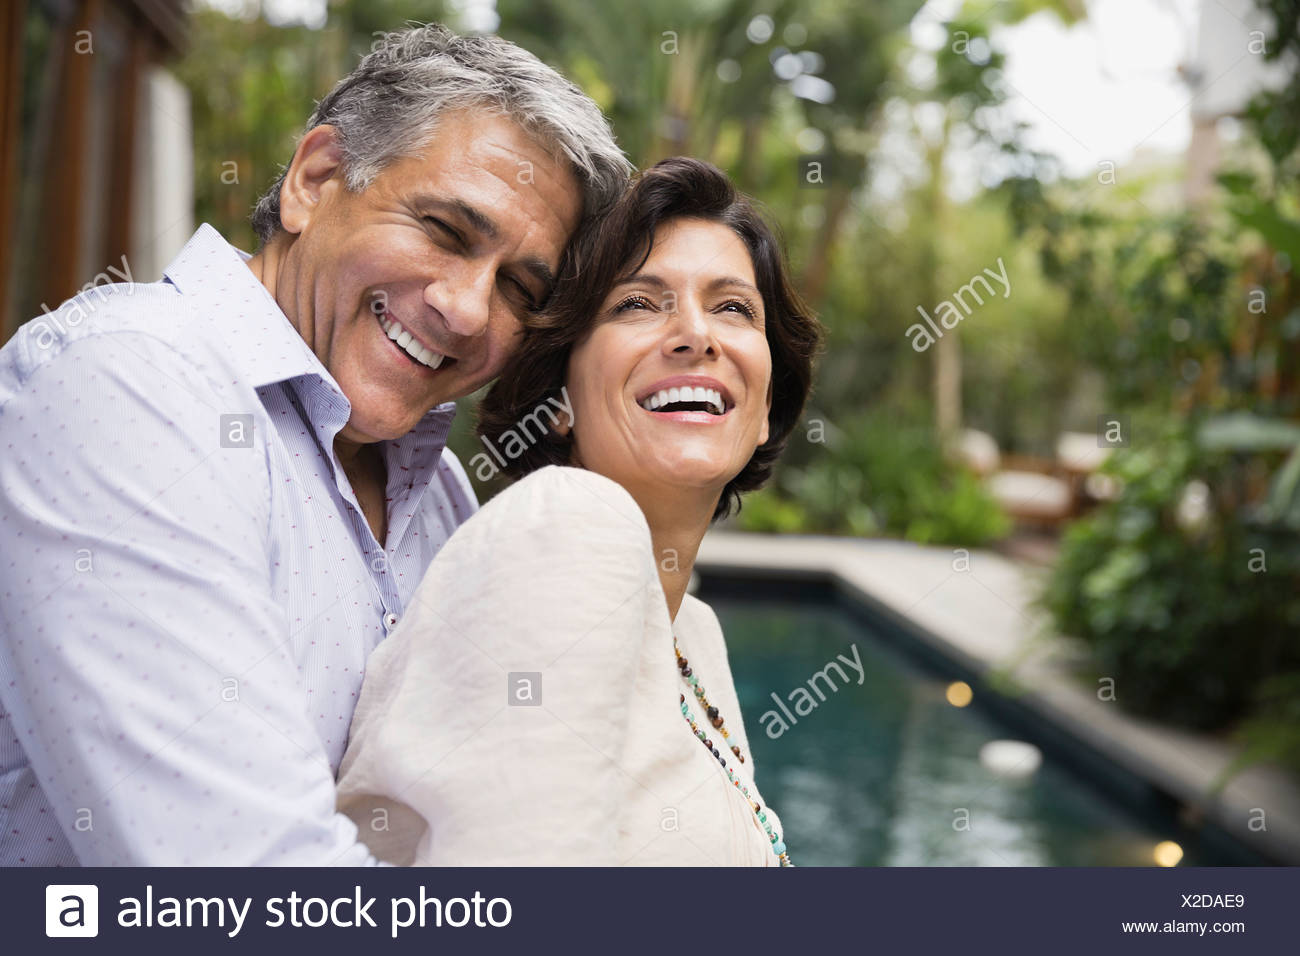 Mature couple embracing outdoors - Stock Image